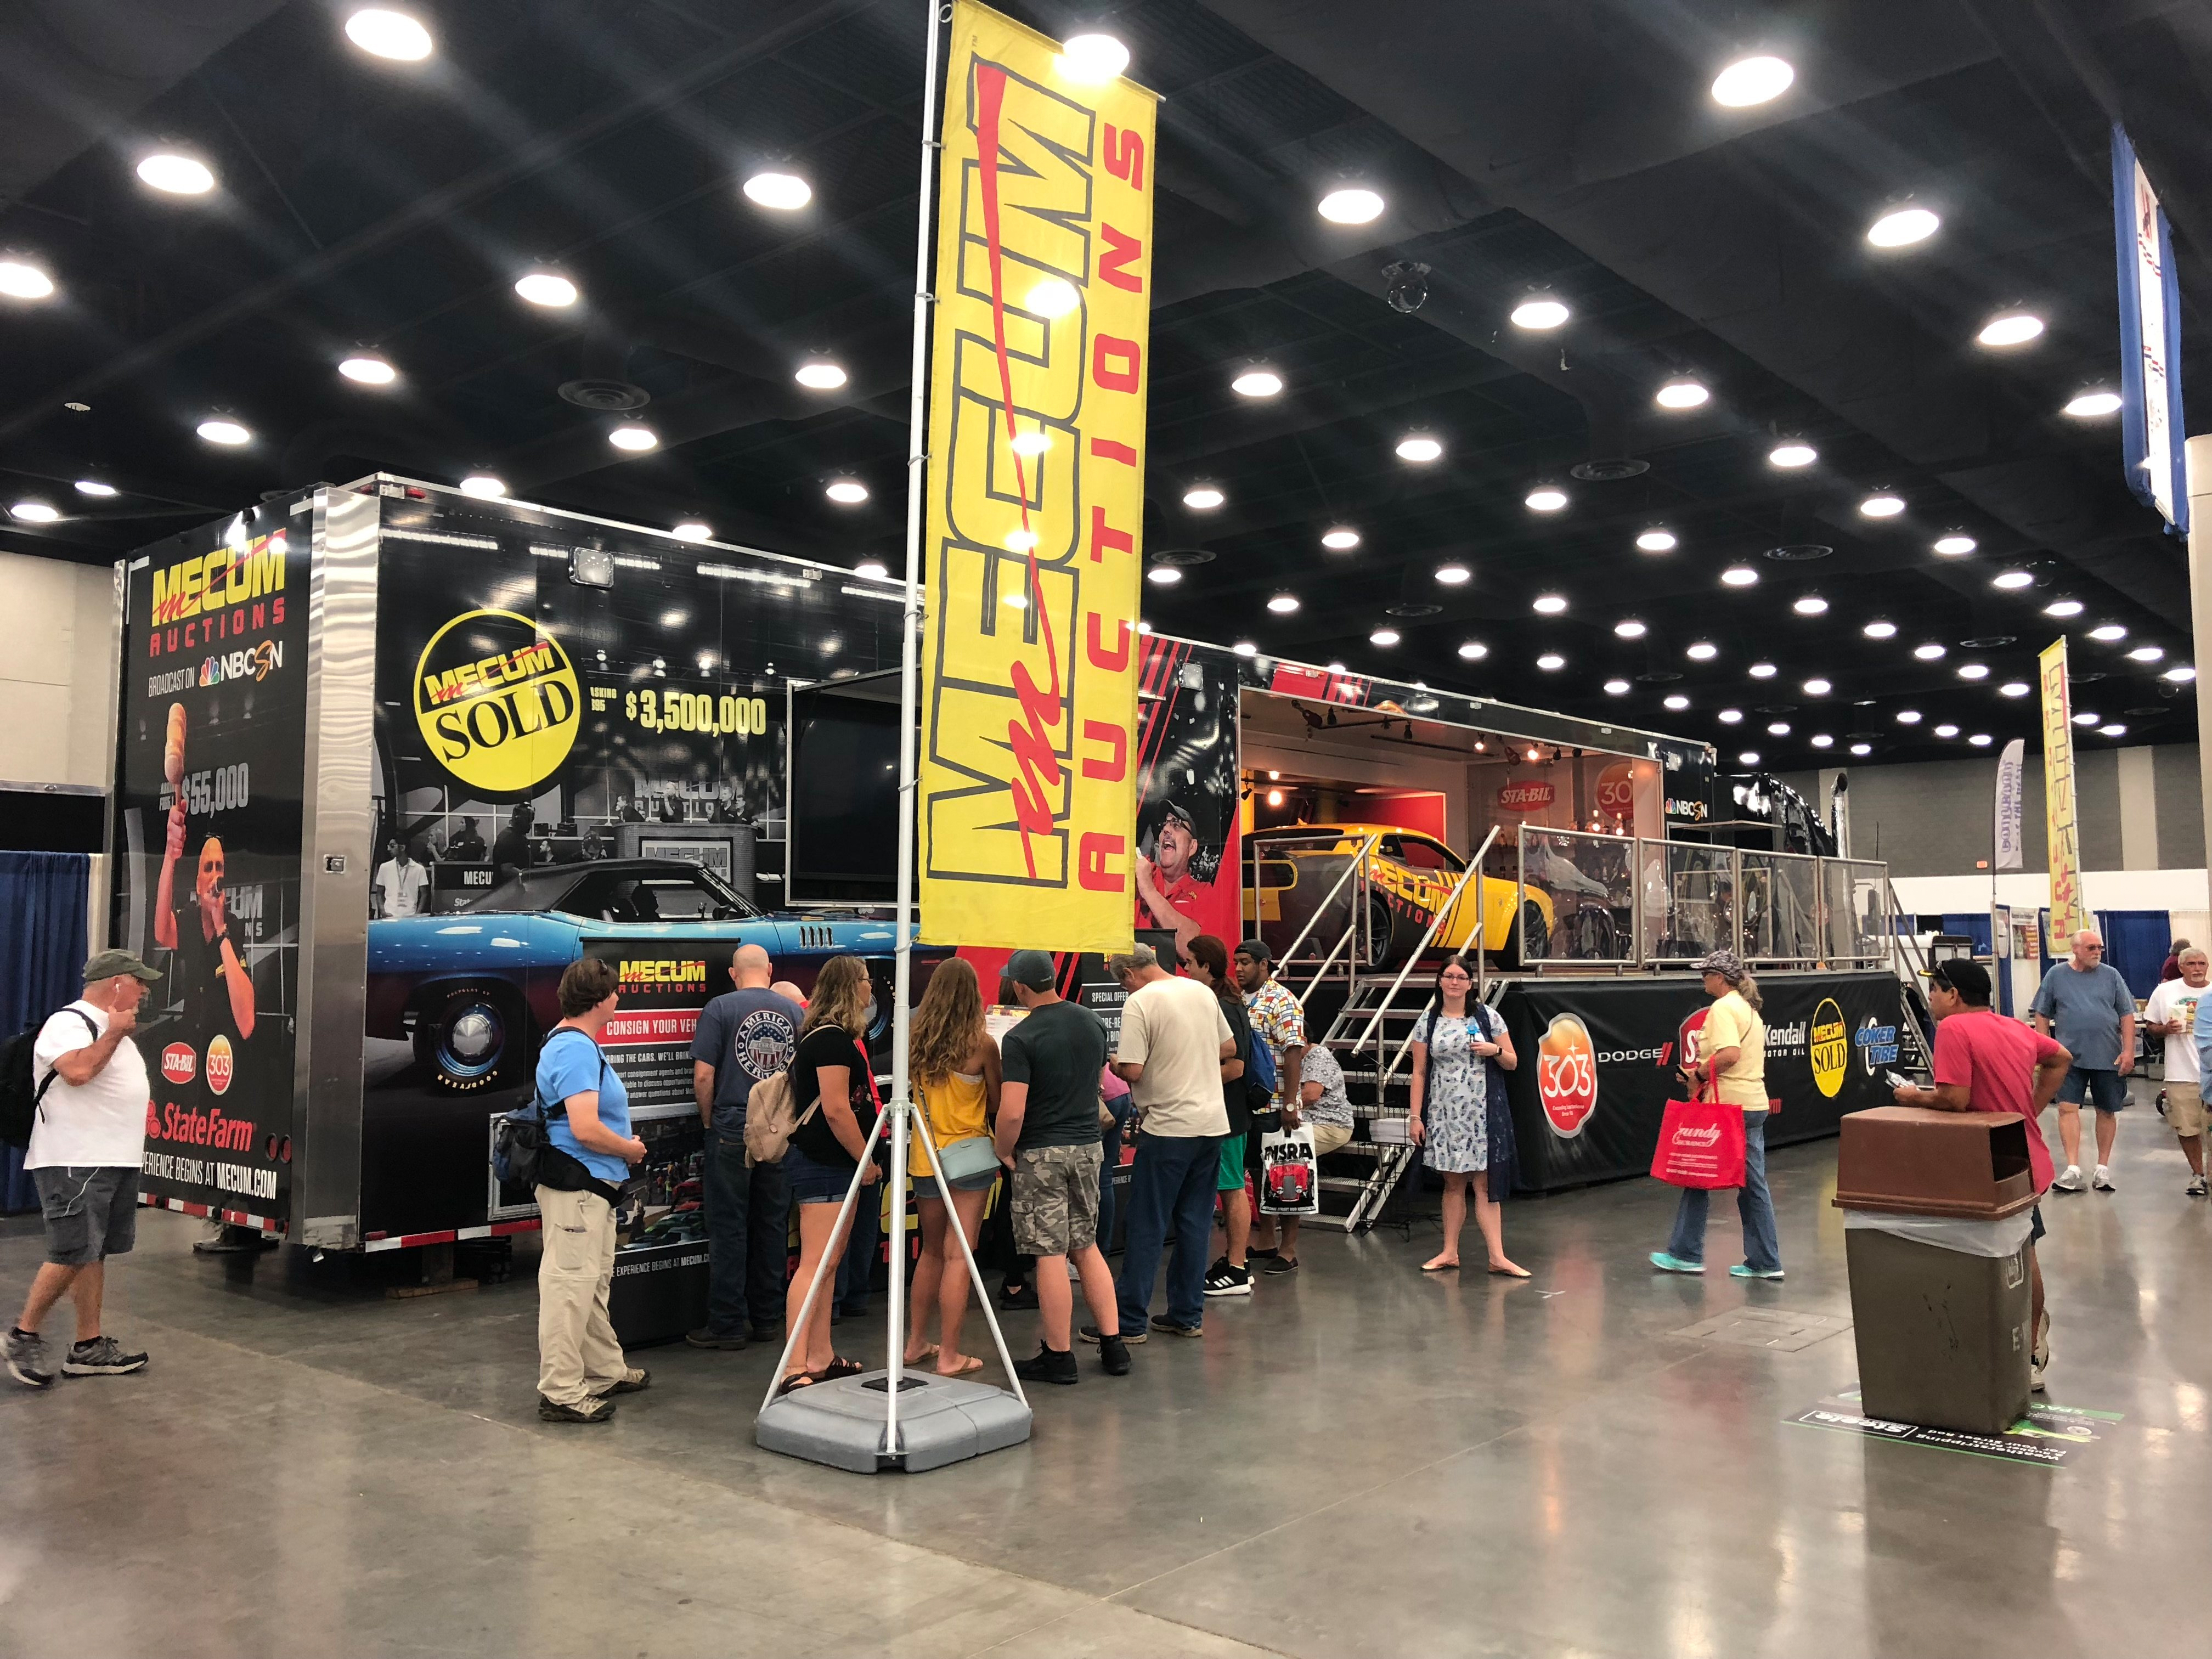 The Mecum Mobile Experience - 53-foot transport hauler complete with video screens and interactive displays